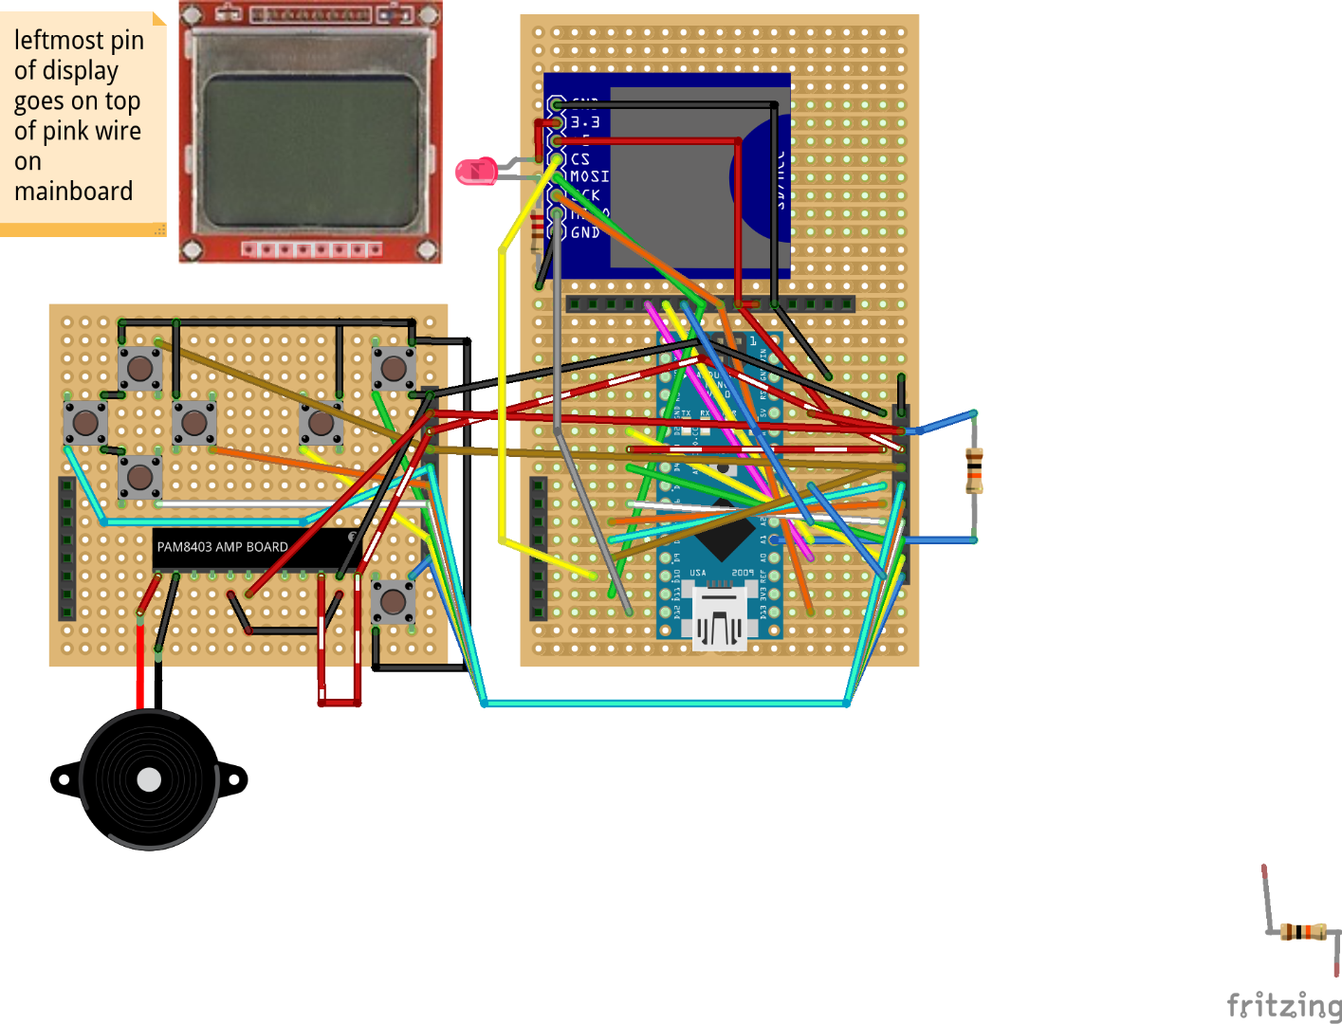 """The DIY """"Gamebuino"""" Device and How to Get One"""